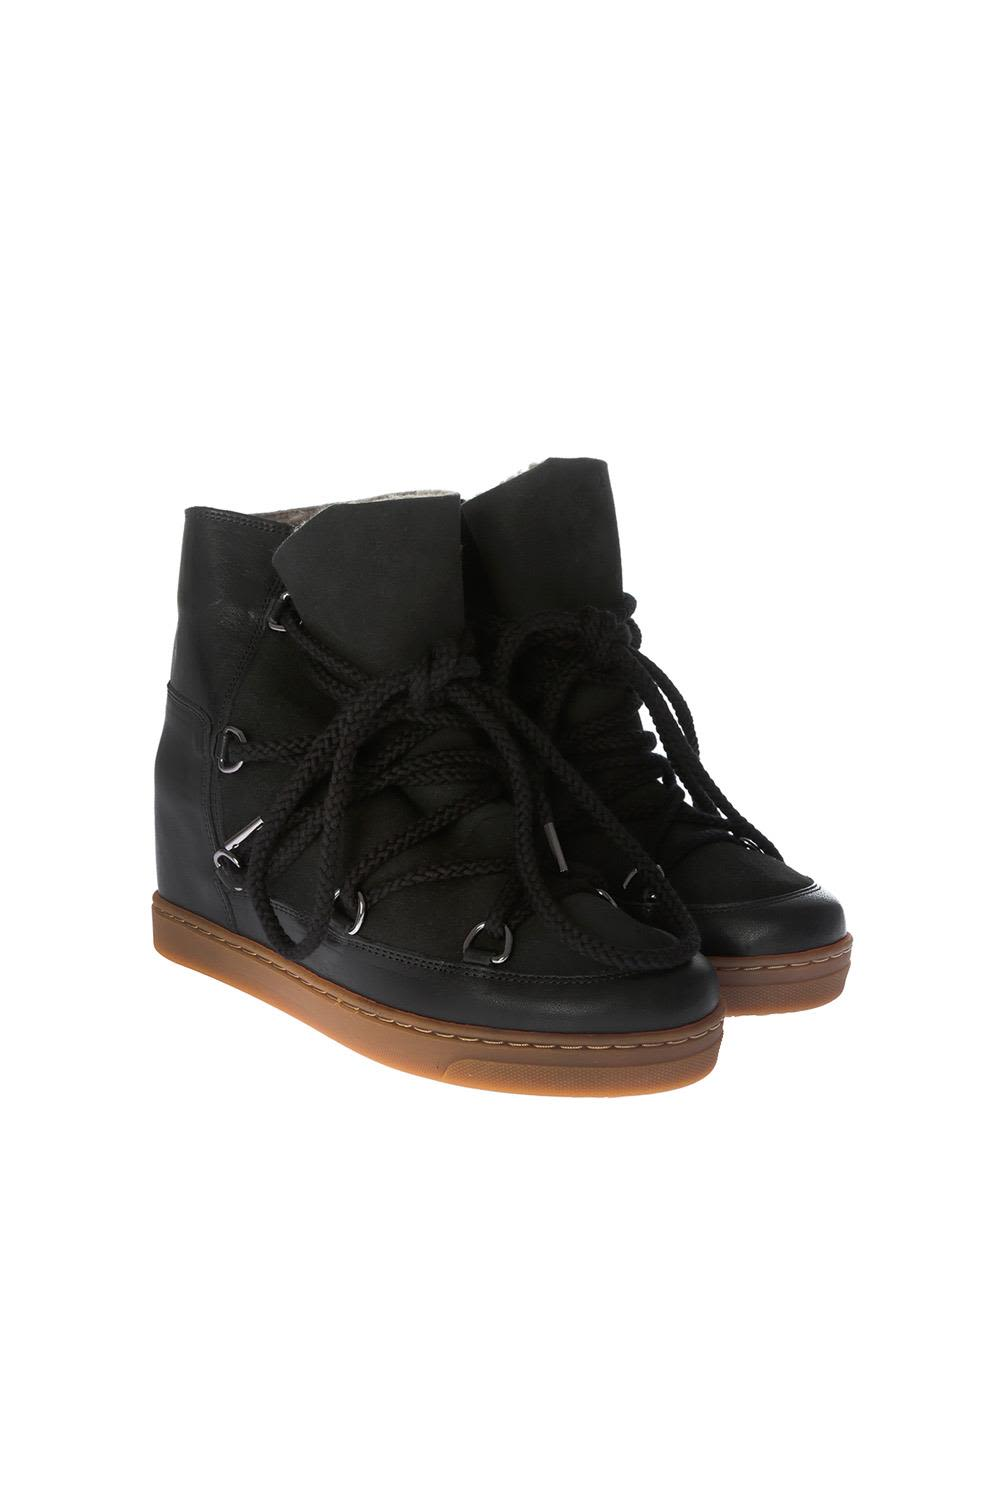 ETOILE NOWLES LACE-UP BOOTS